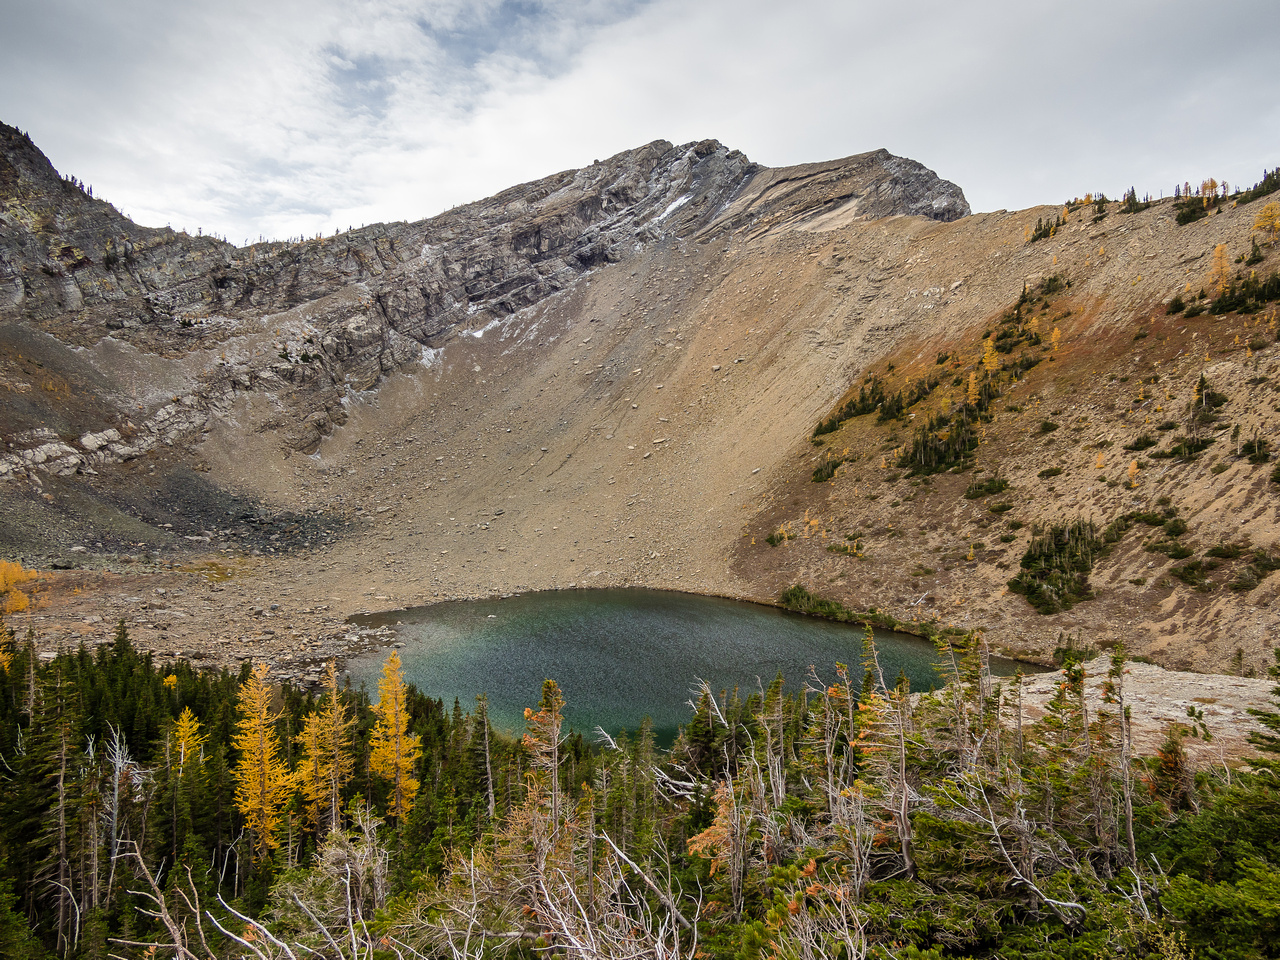 Another perspective from slightly above the first lake showing the recommended slab route on Three Lakes Ridge.